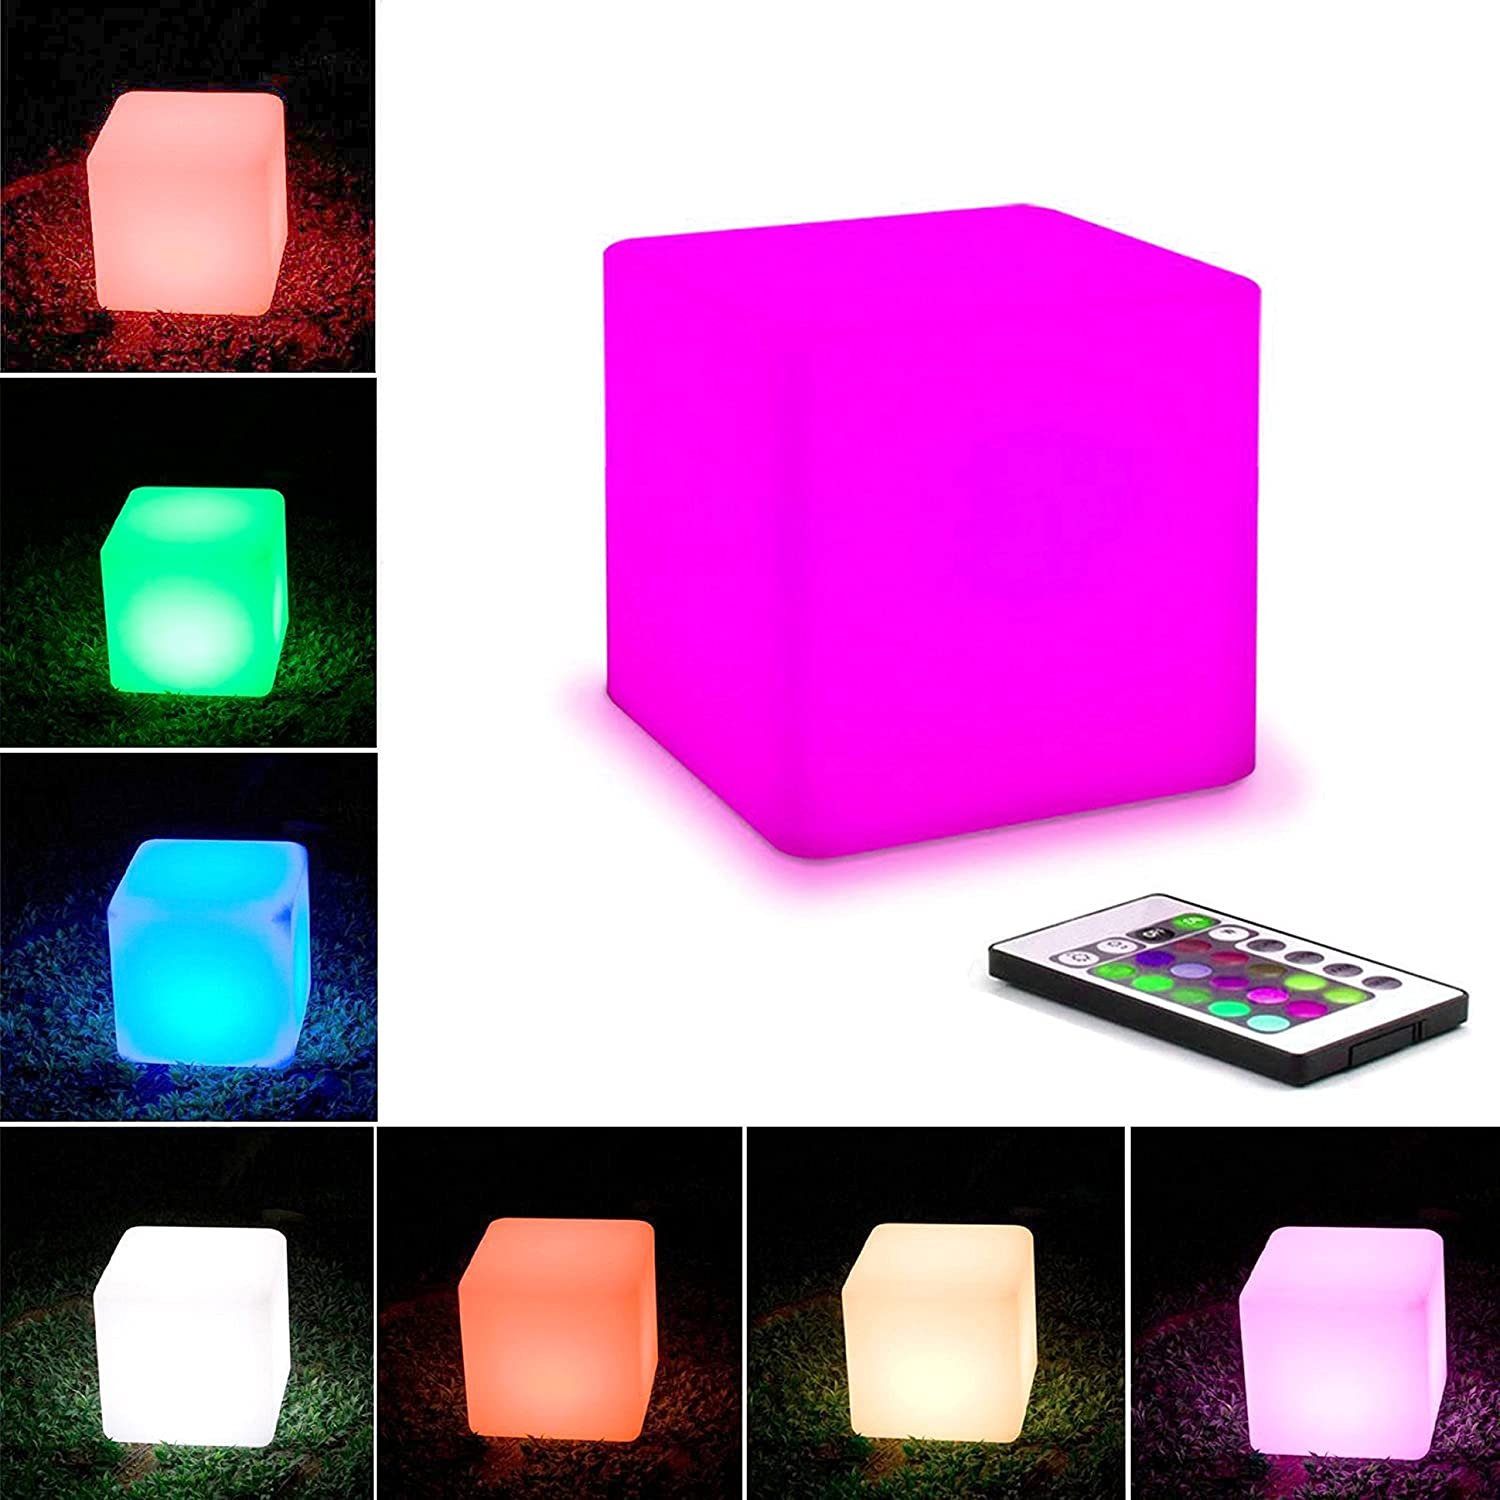 Com buy 10cm cube decorative battery operated rgb led table lamps - Amazon Com Coolqing Waterproof Floating 10cm 4inch Led Cube Lights Rgbw Color Changing Night Cube Table Lamp Pool Light With Rc Ideal For Indoor